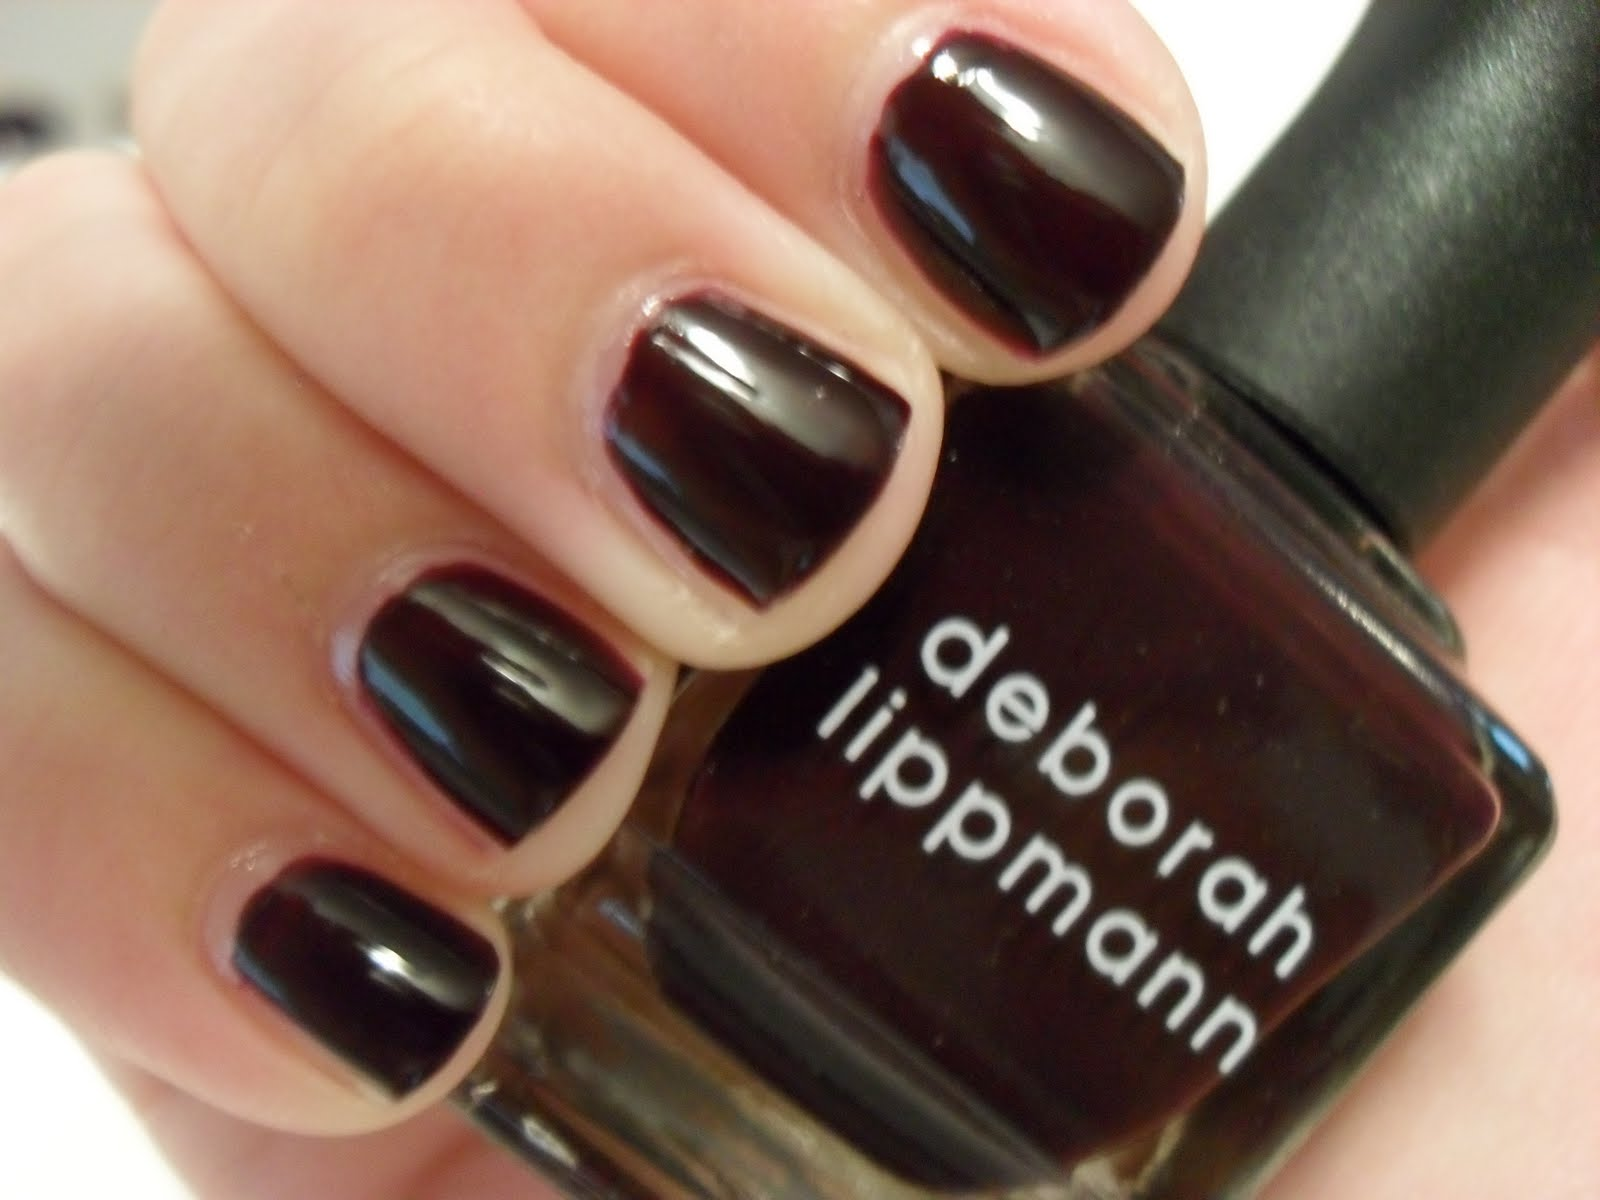 Polished Claws Up!: Deborah Lippmann - Dark Side of the Moon